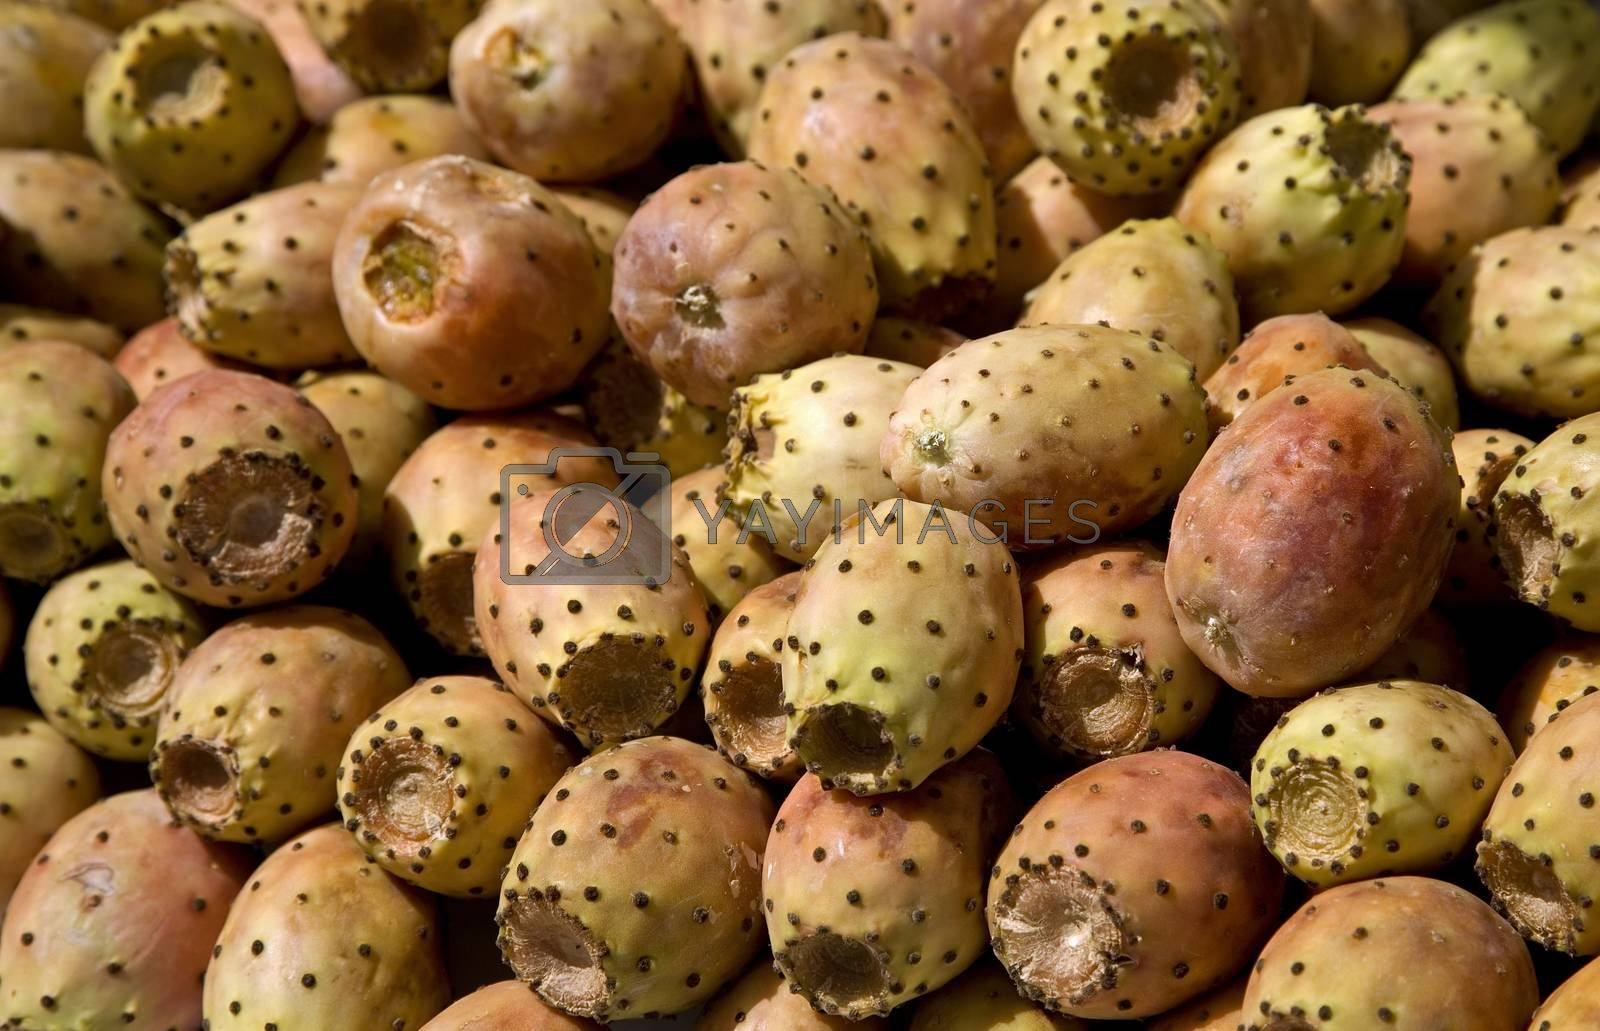 Royalty free image of Fruits of Opuntia ficus-indica , Cactus fruits. by phortcach